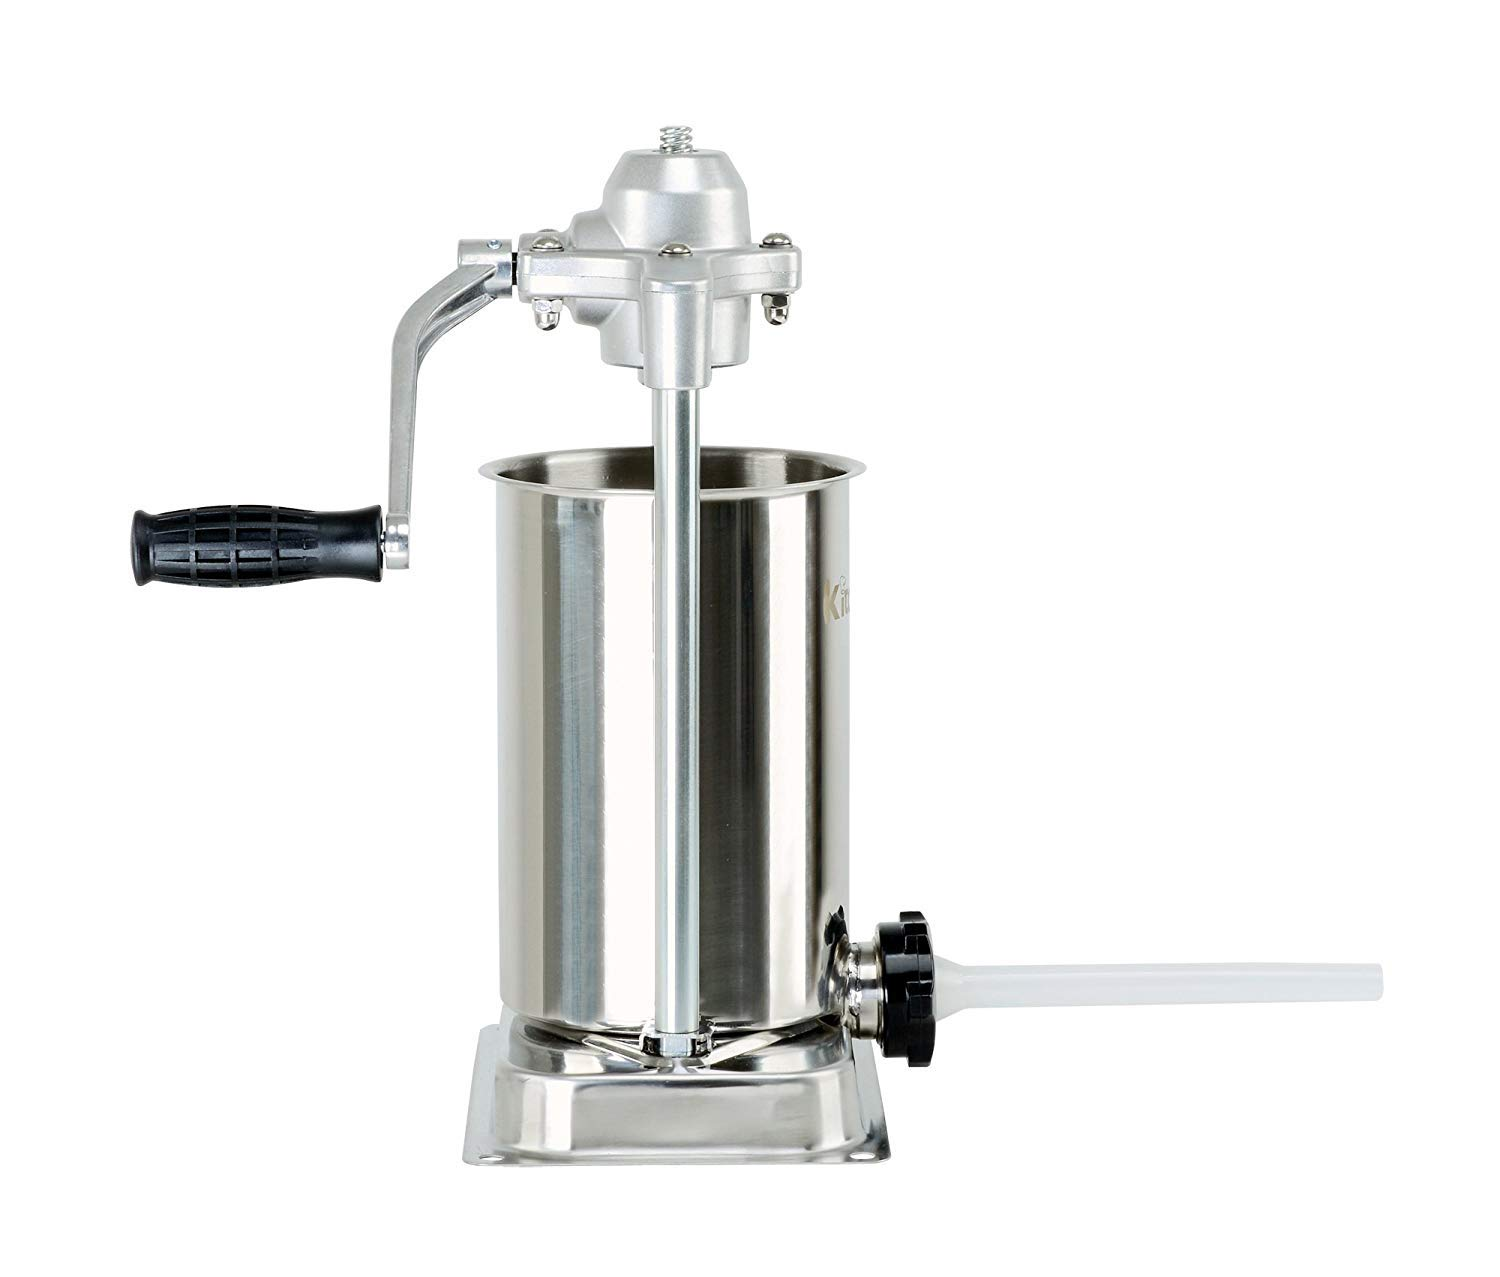 Kitchener Heavy Duty Stainless Steel Vertical Sausage Stuffer//Filler//Maker with 3 Stuffing Tubes